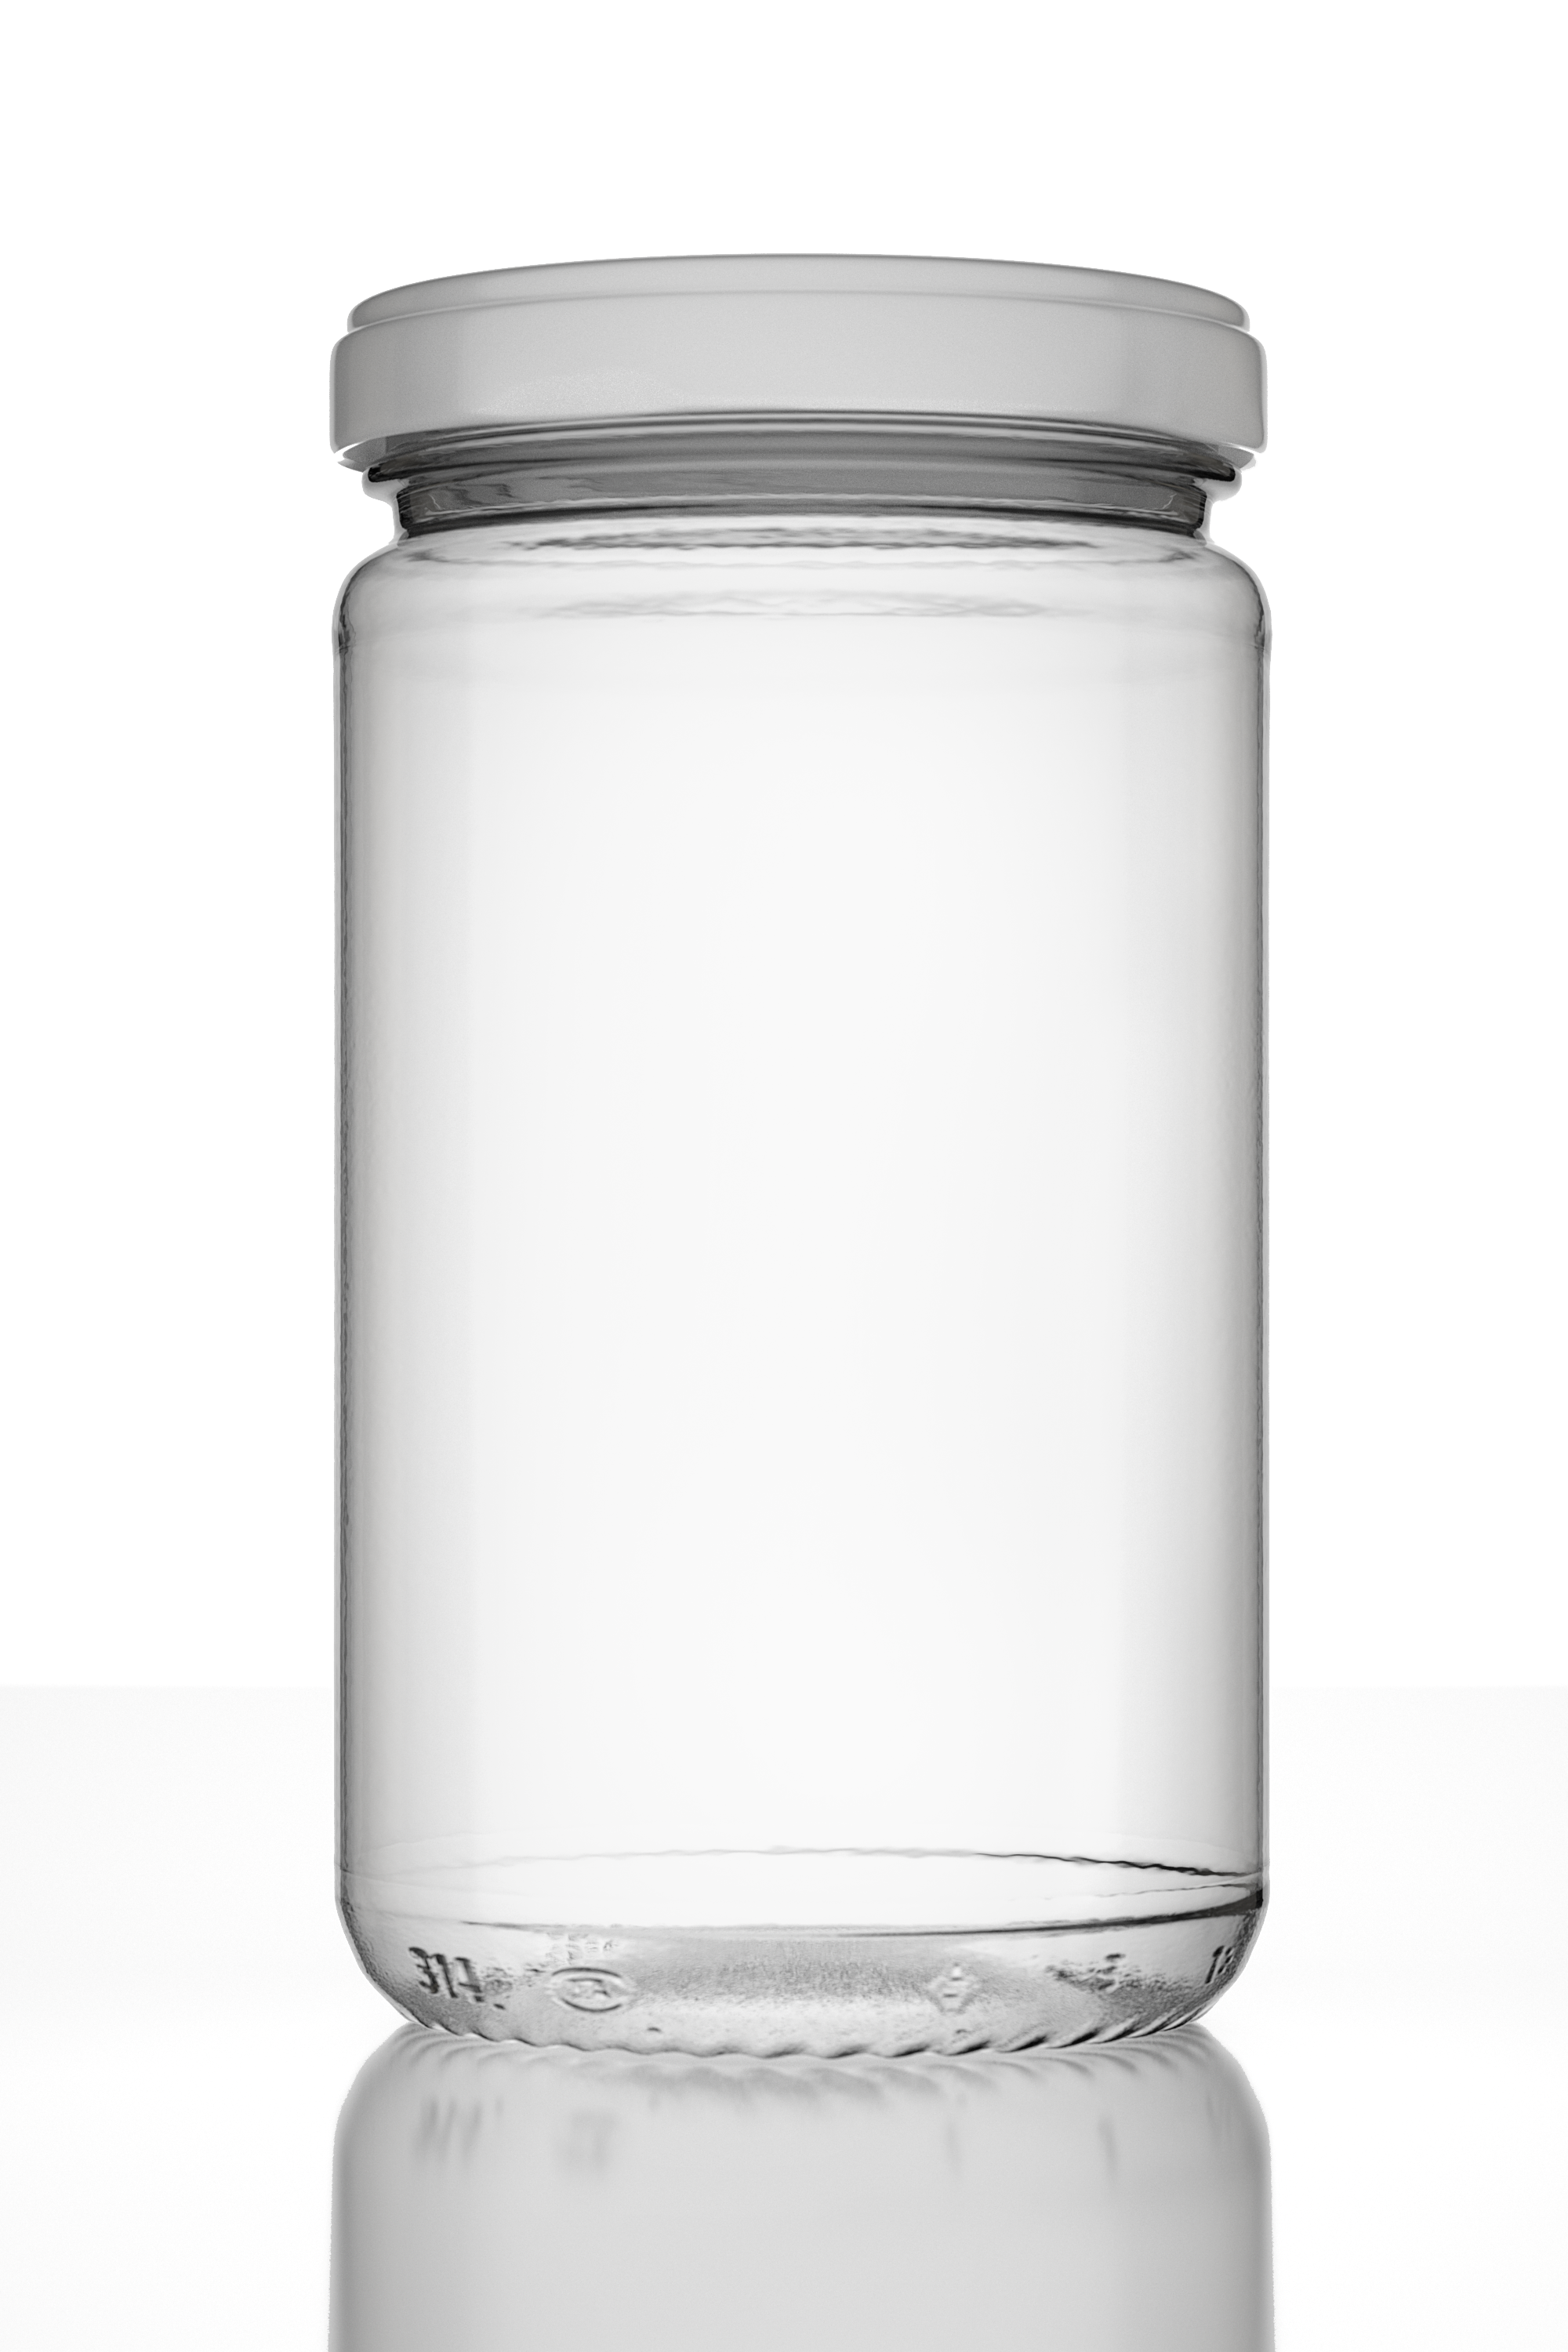 Photorealistic Empty Jar With Lid And Lab By Mario Teodoru